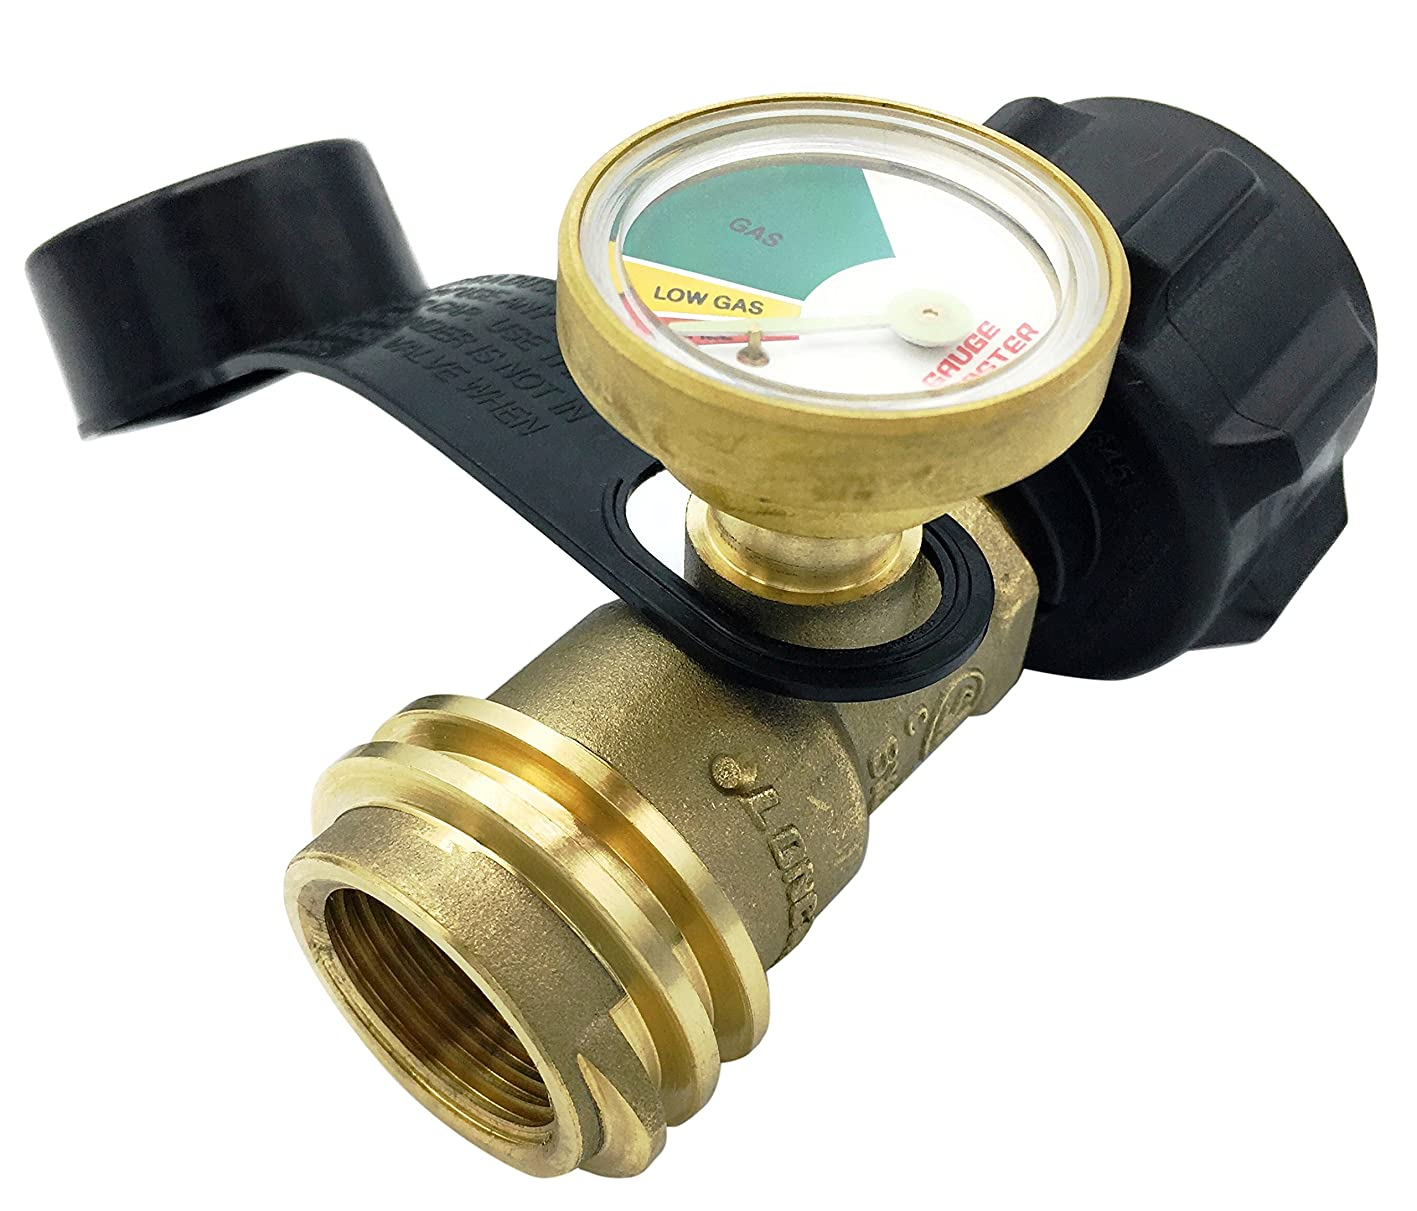 Gauge Master GMA8110 Premium Propane Tank Meter-Cylinder Gas Level Indicator Adapter Suitable for All BBQ Grill, RV Camper & Appliances-Type 1 Connection sflmlookgtg706